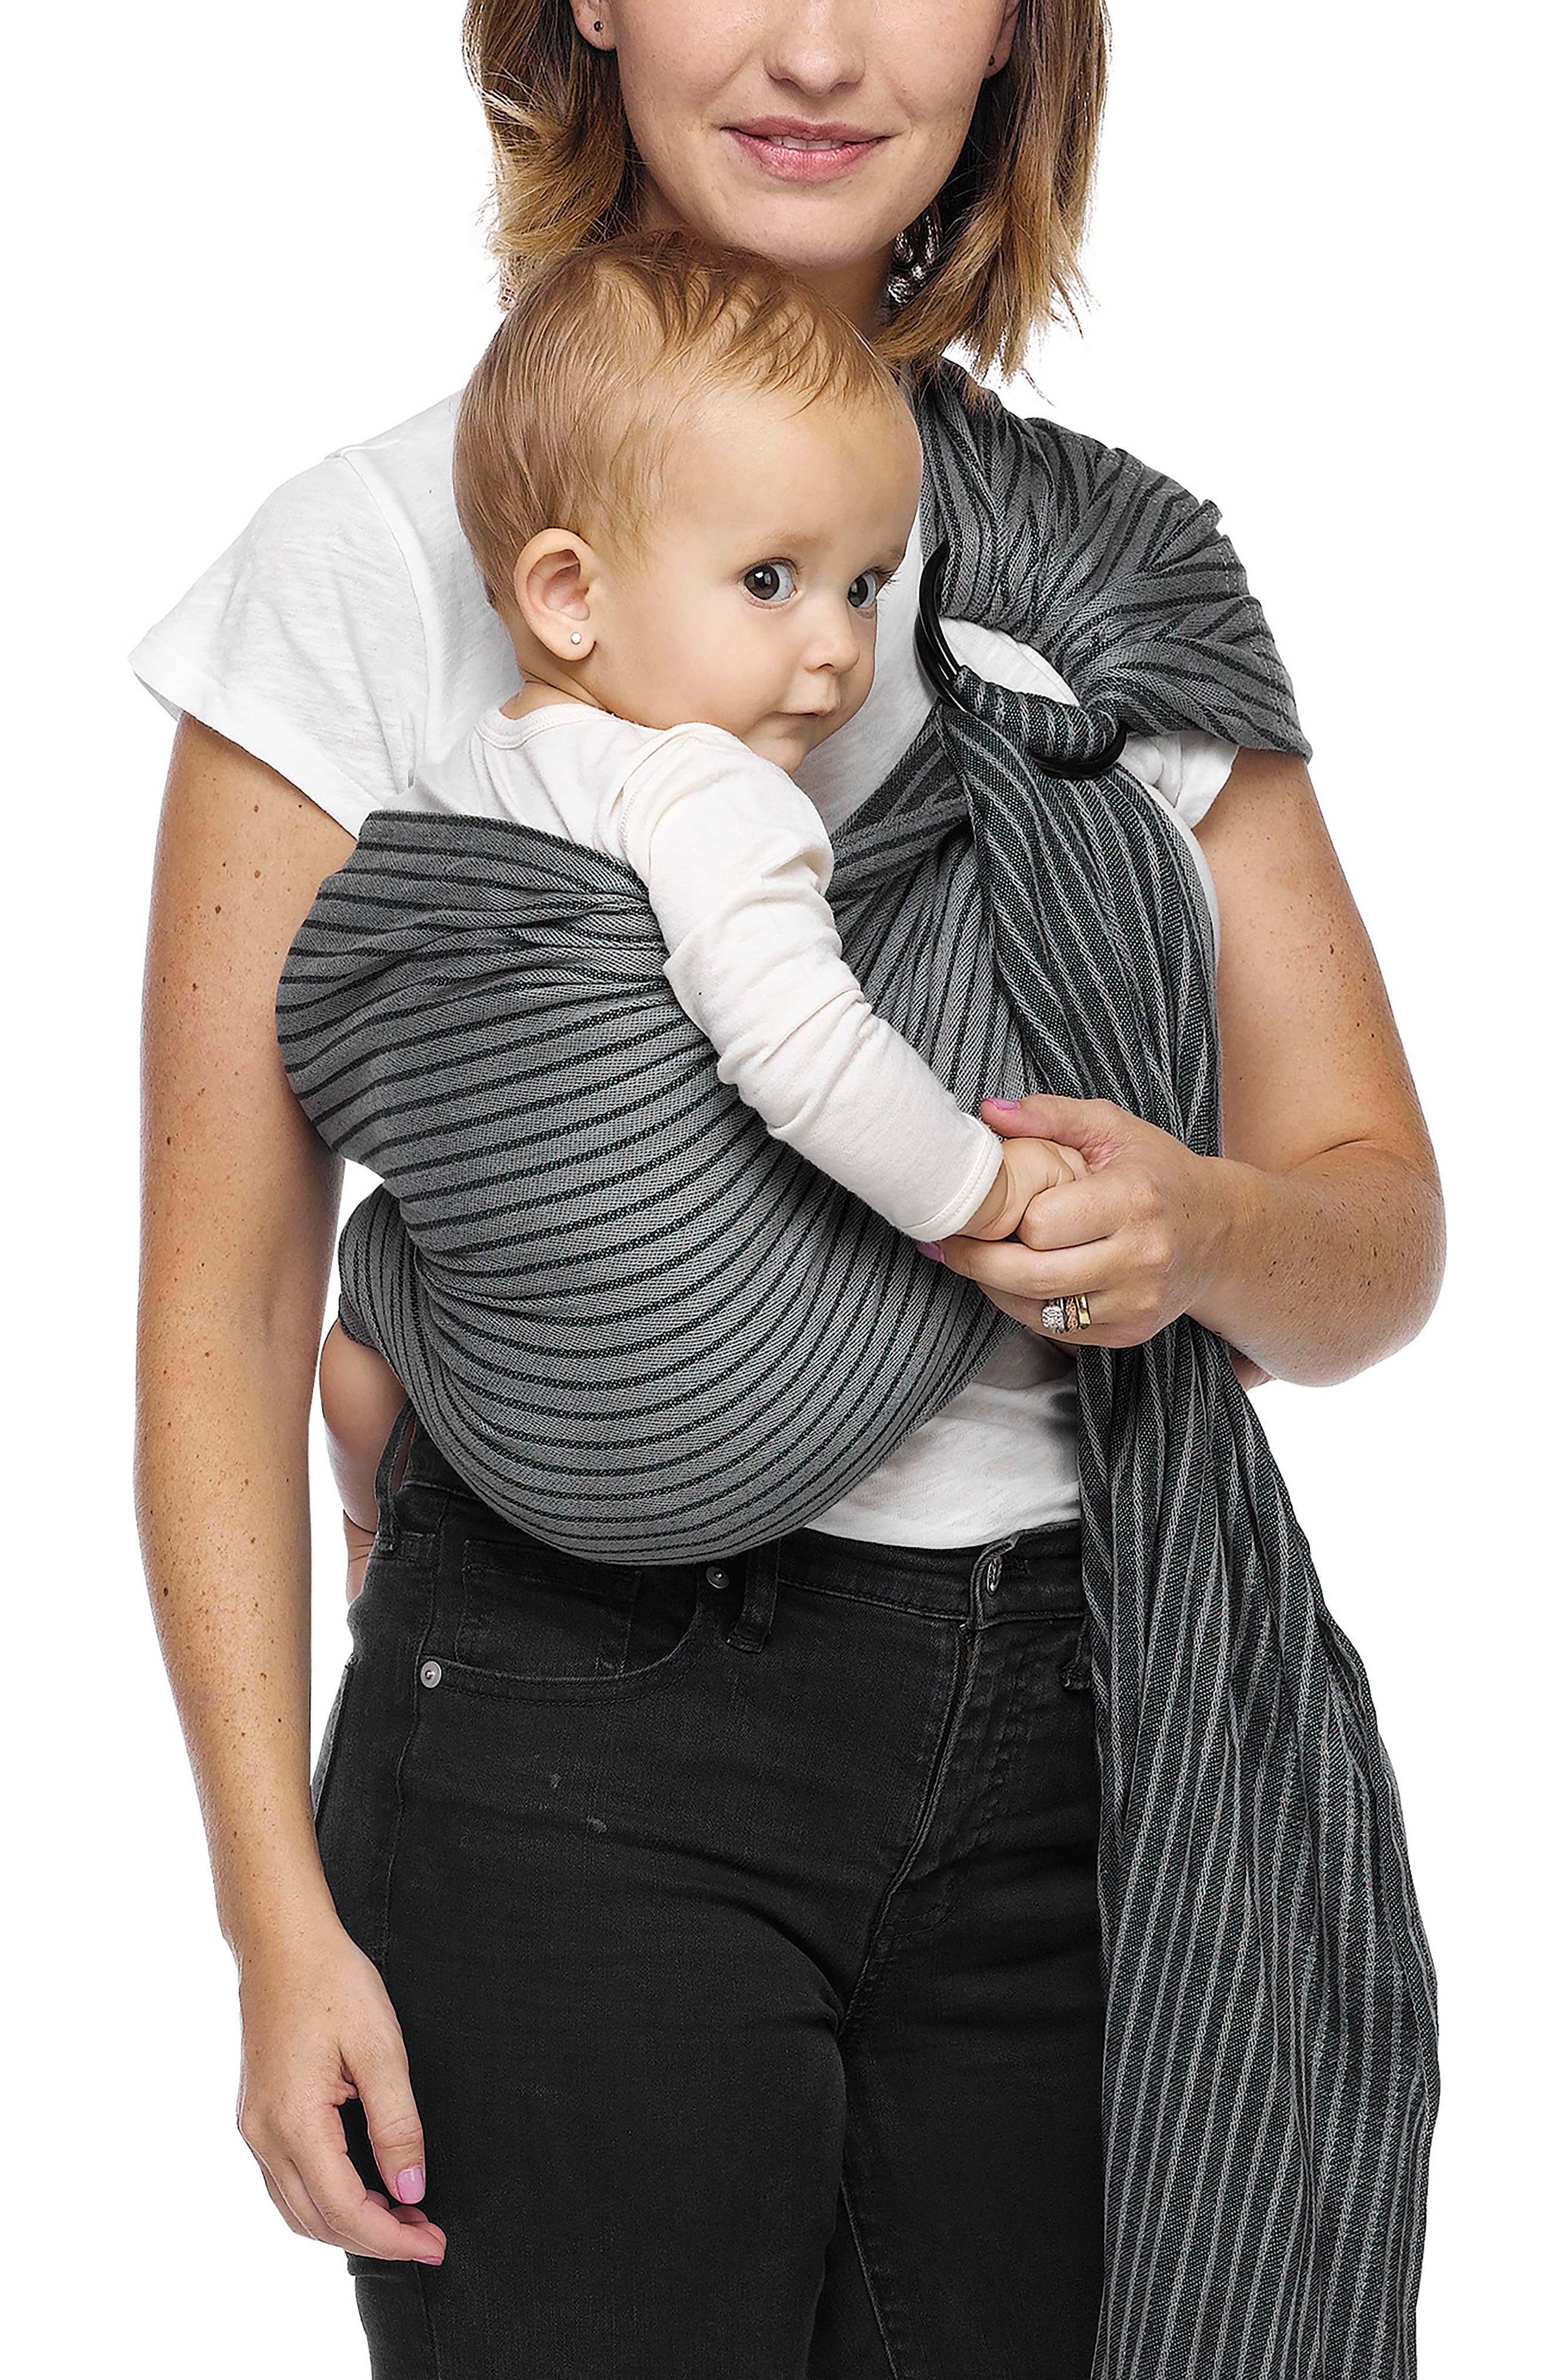 Main Image - Moby Wrap Baby Sling Carrier